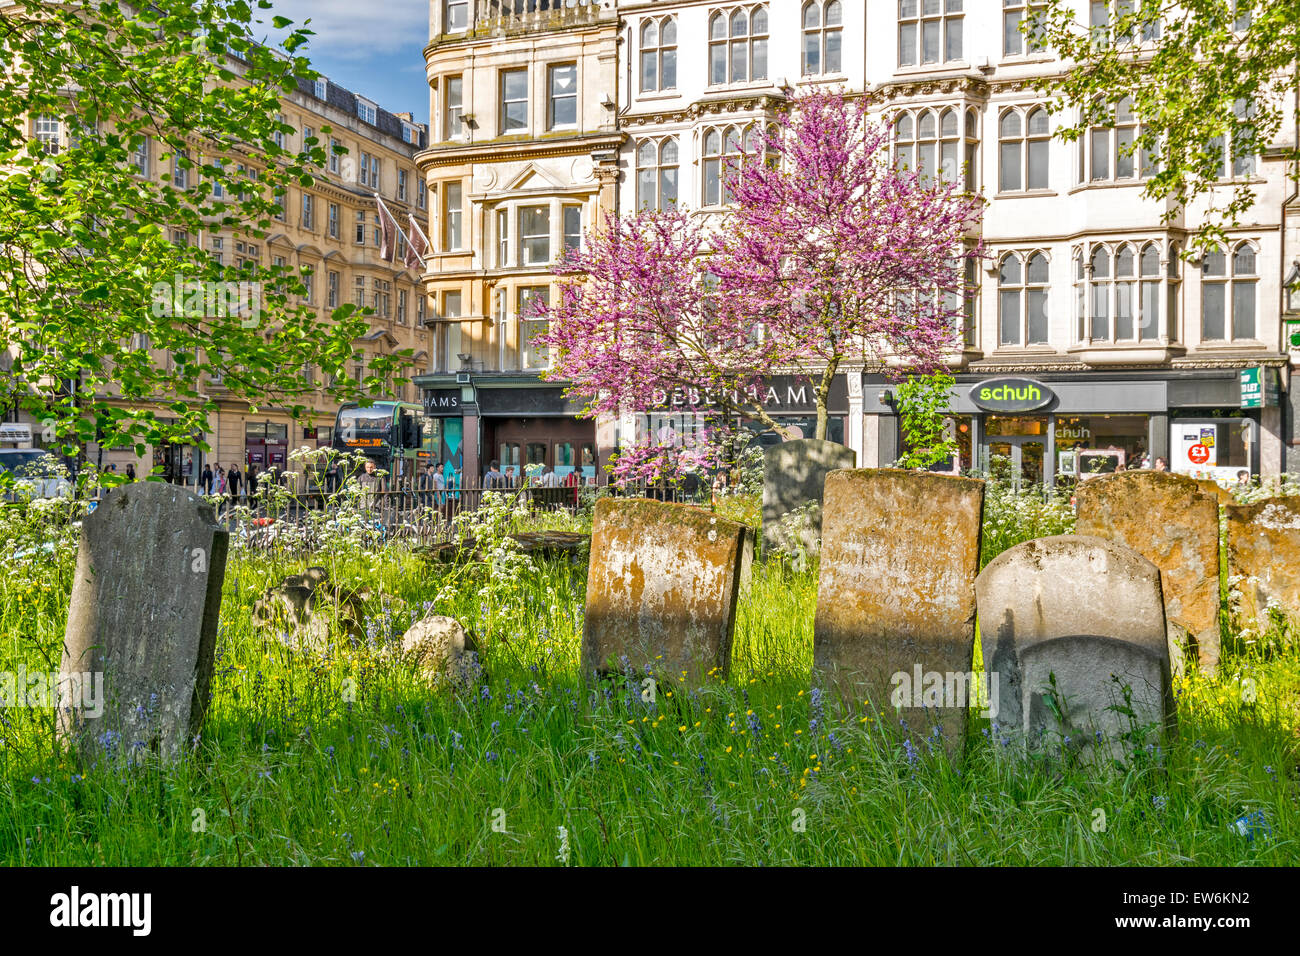 ST. MARY MAGDALEN GRAVEYARD AND OLD TOMBSTONES WITH PINK FLOWERING TREE CENTRE OF OXFORD ON MAGDALEN STREET - Stock Image